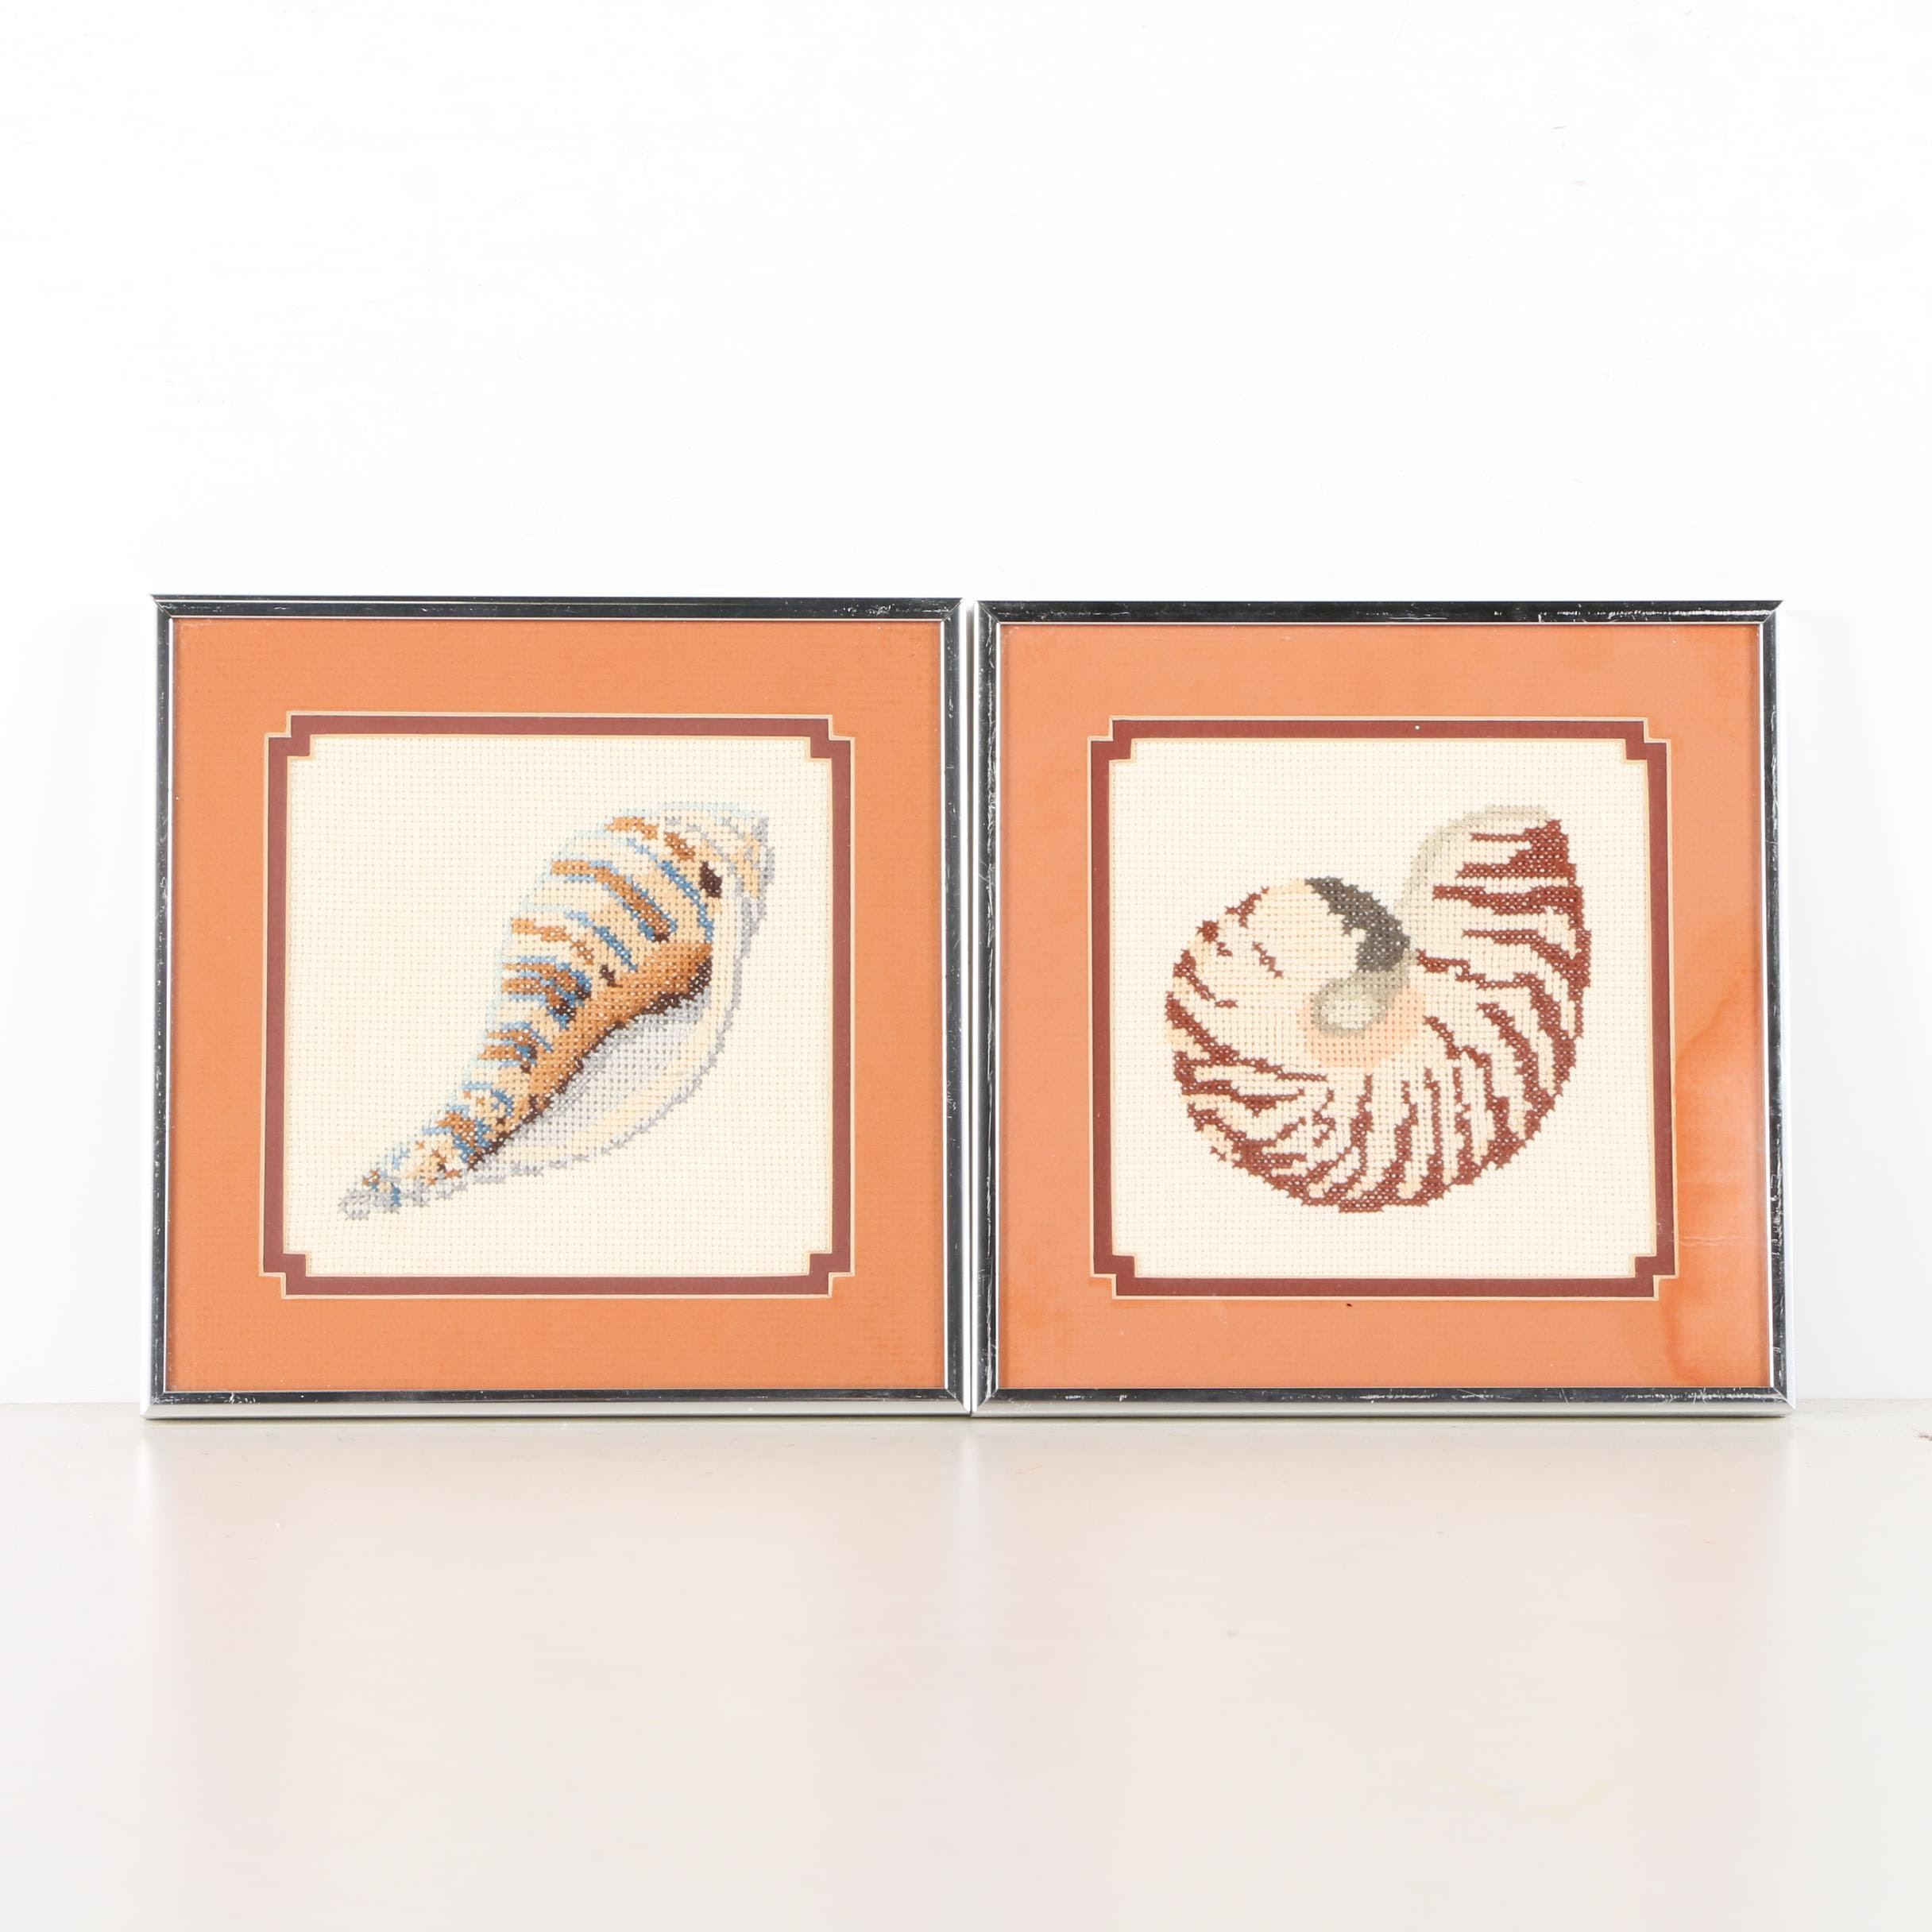 Cross-Stitches of Shells